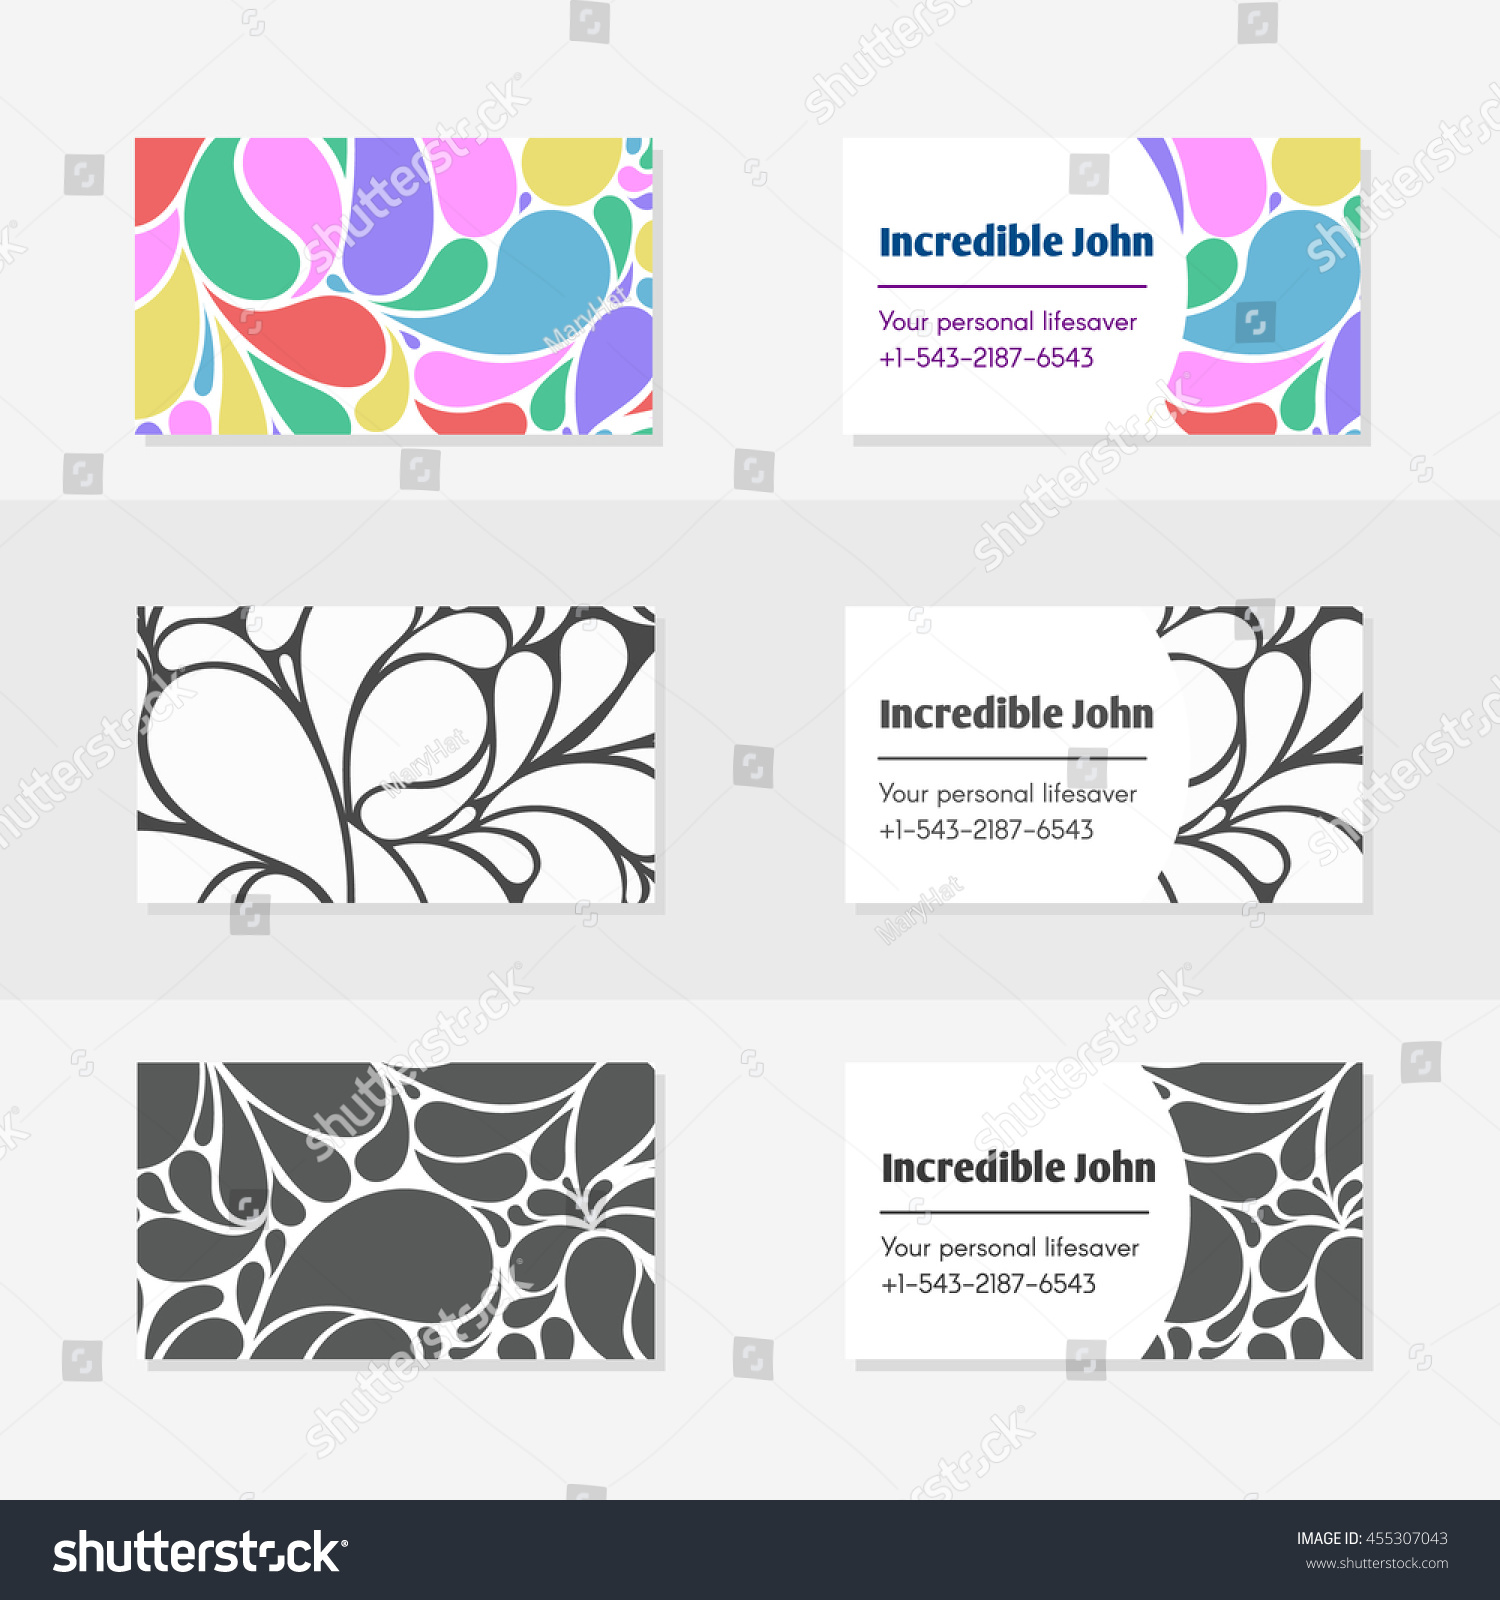 Templates Design Business Cards Style Drops Stock Illustration ...